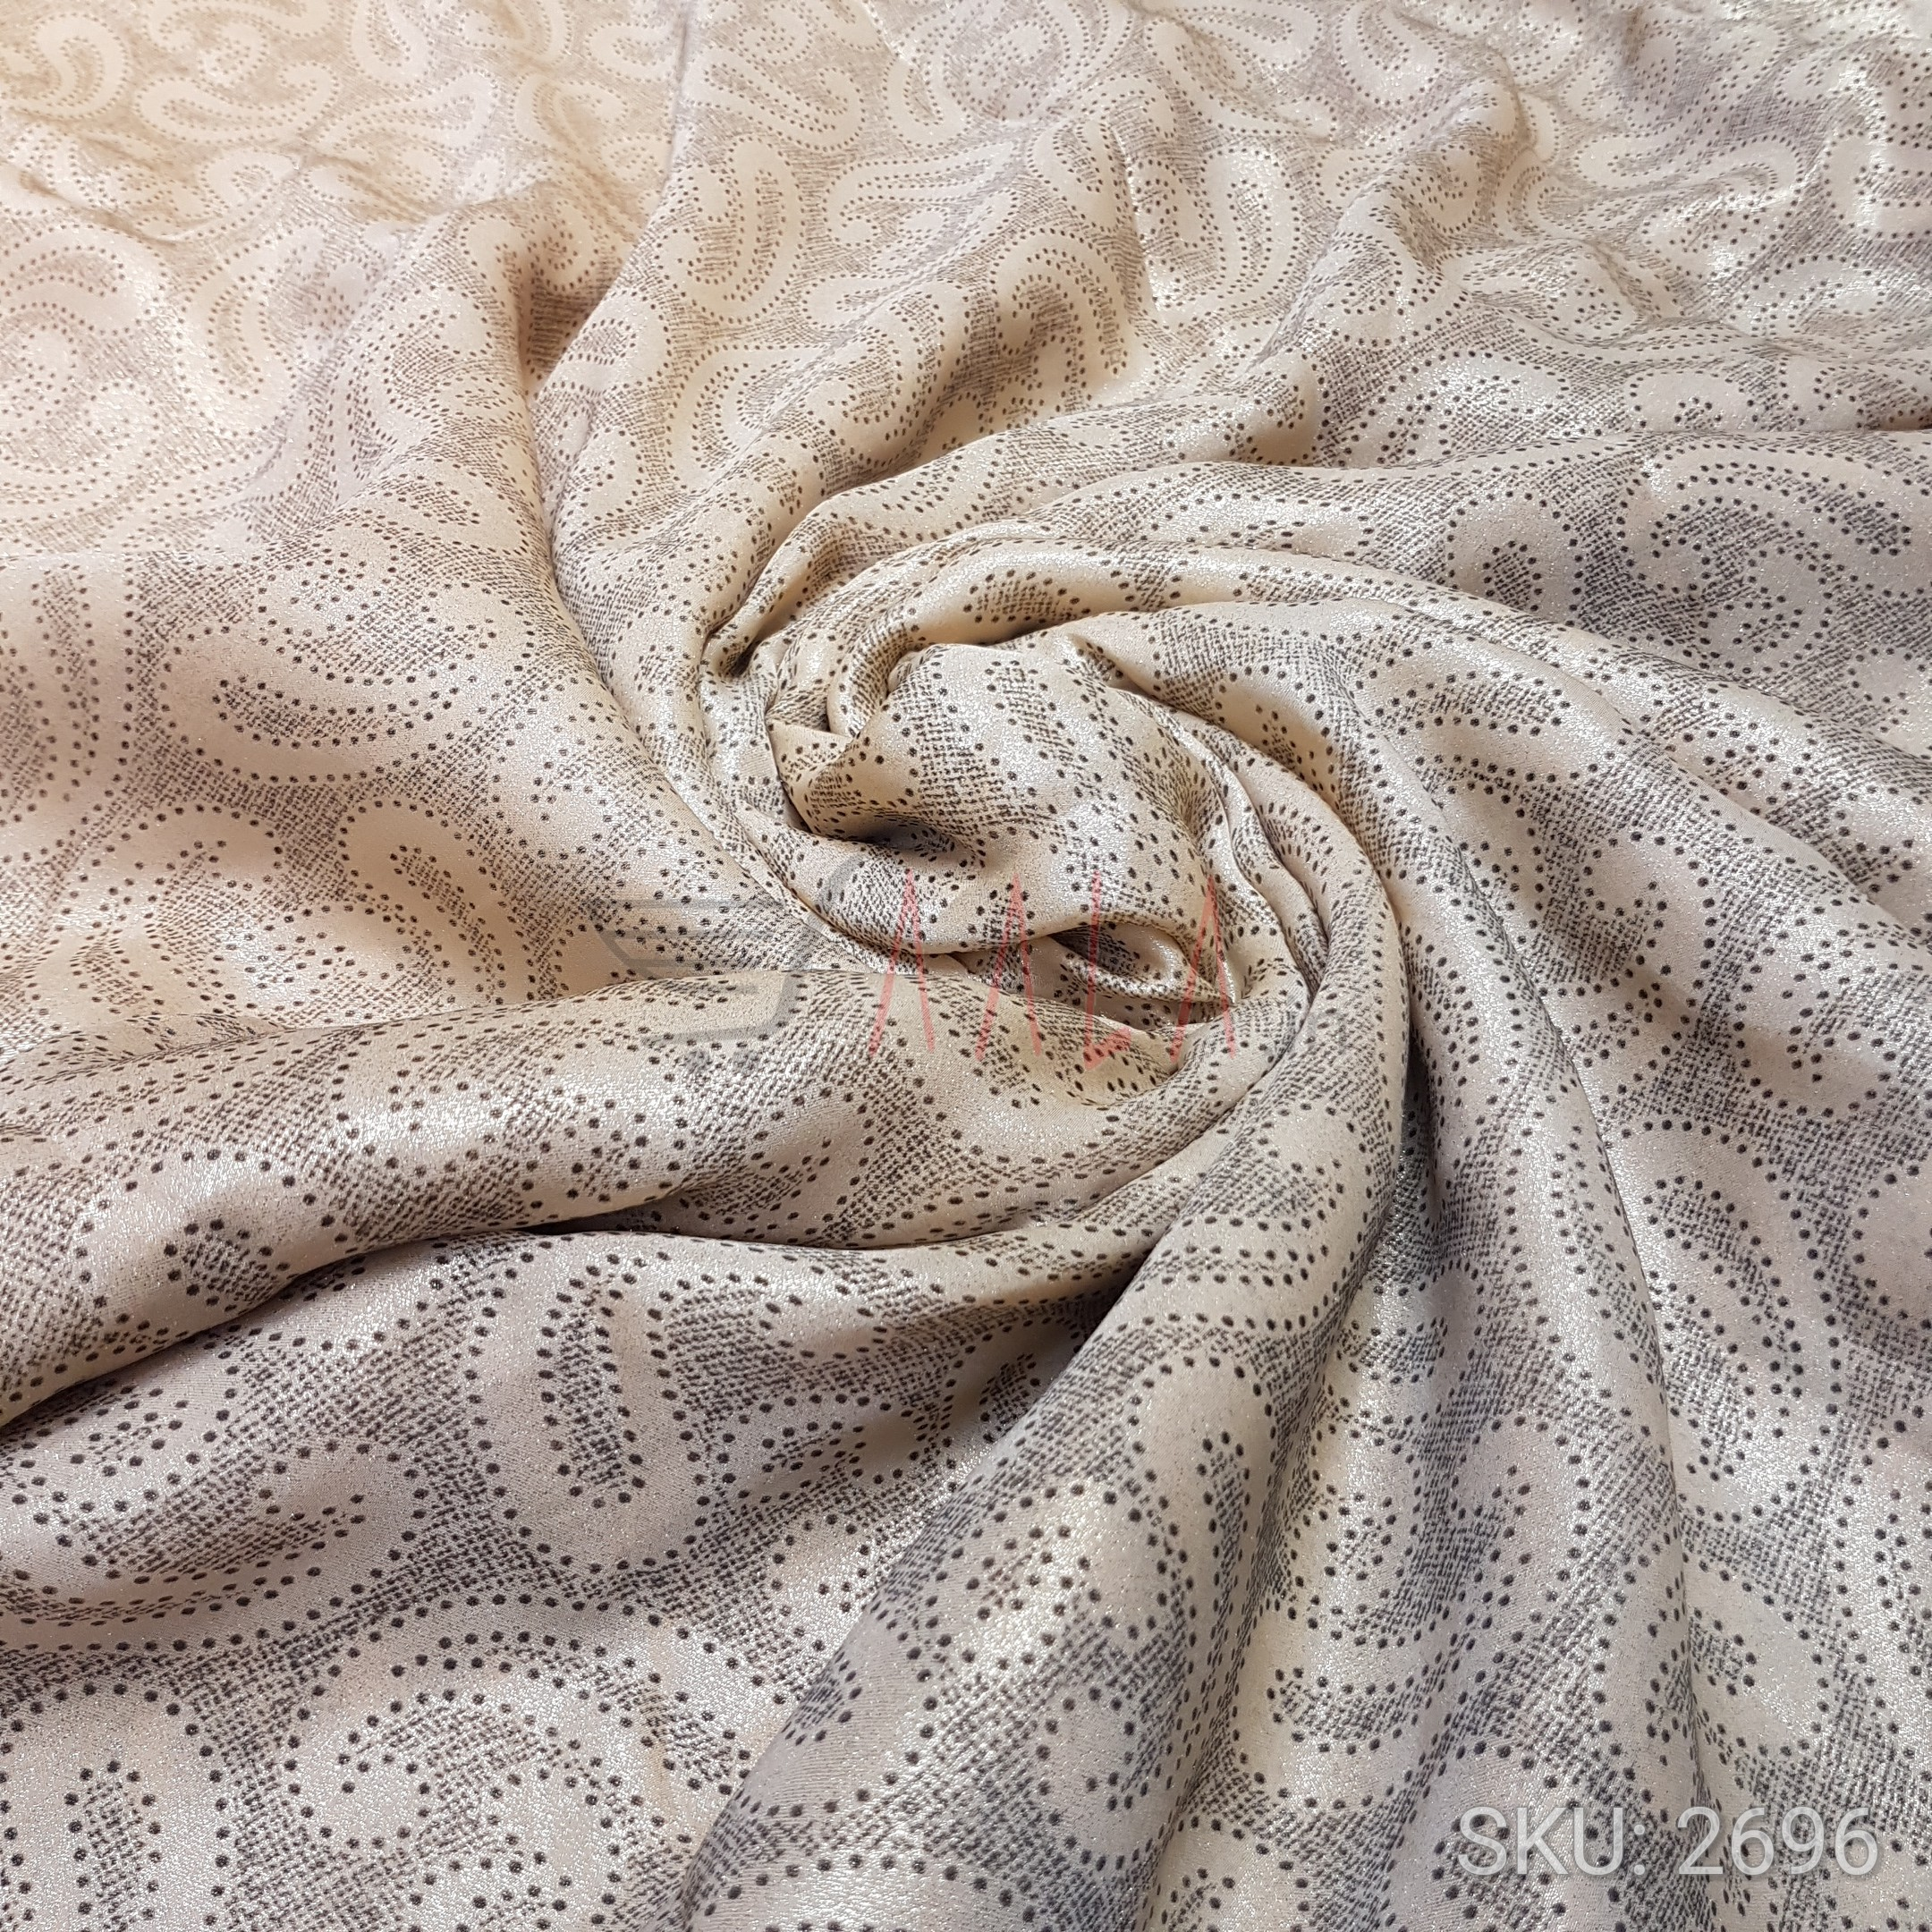 Crazy Satin Georgette Poly-ester 44 Inches Dyed Per Metre #2696